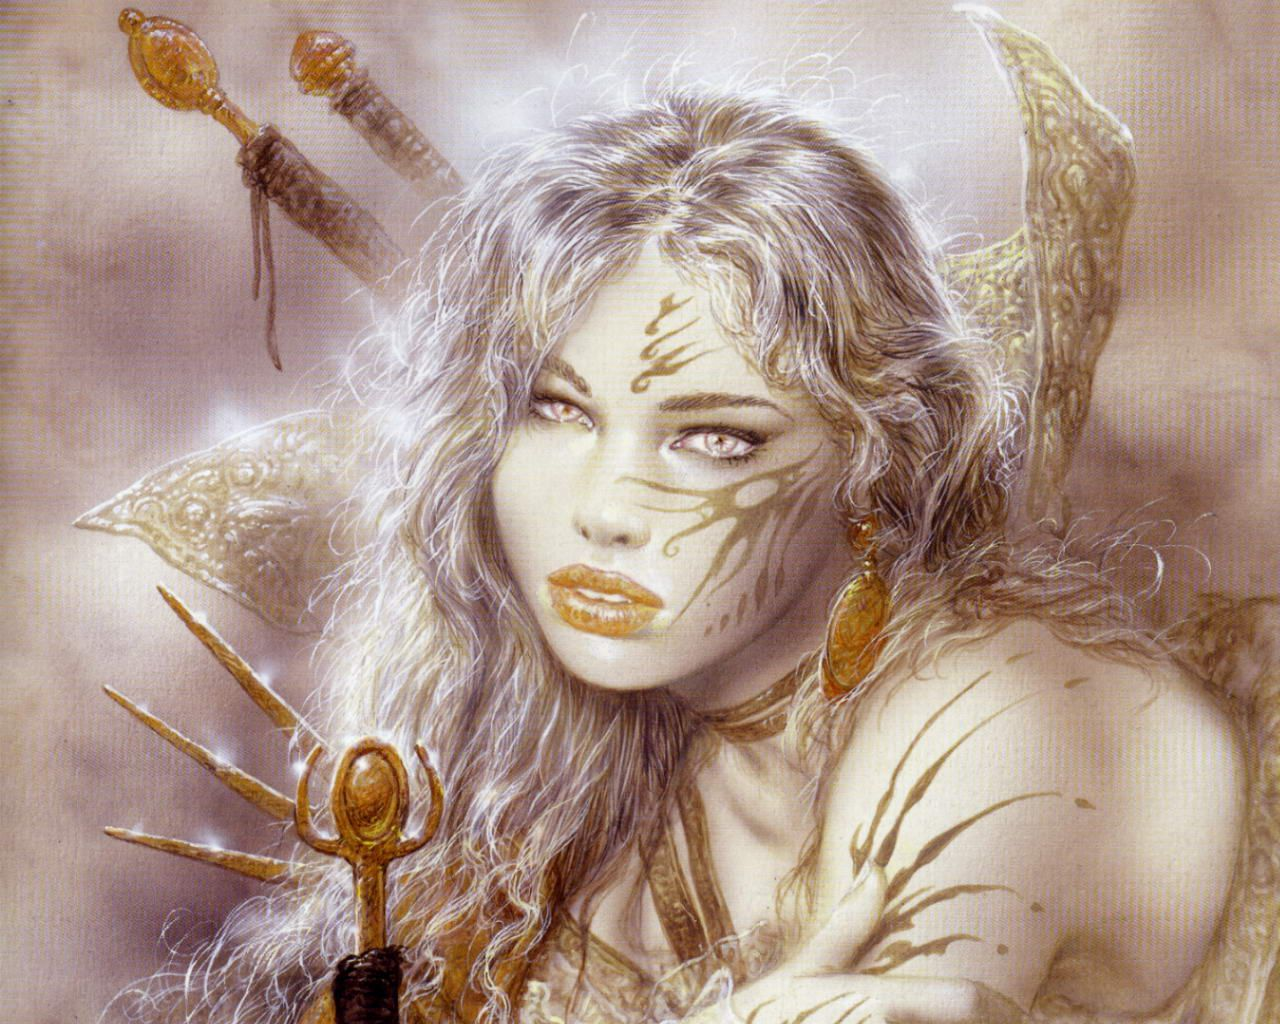 Luis royo images luis royo wallpapers luis royo fantasy art luis royo images luis royo wallpapers luis royo fantasy art pictures free fine voltagebd Image collections